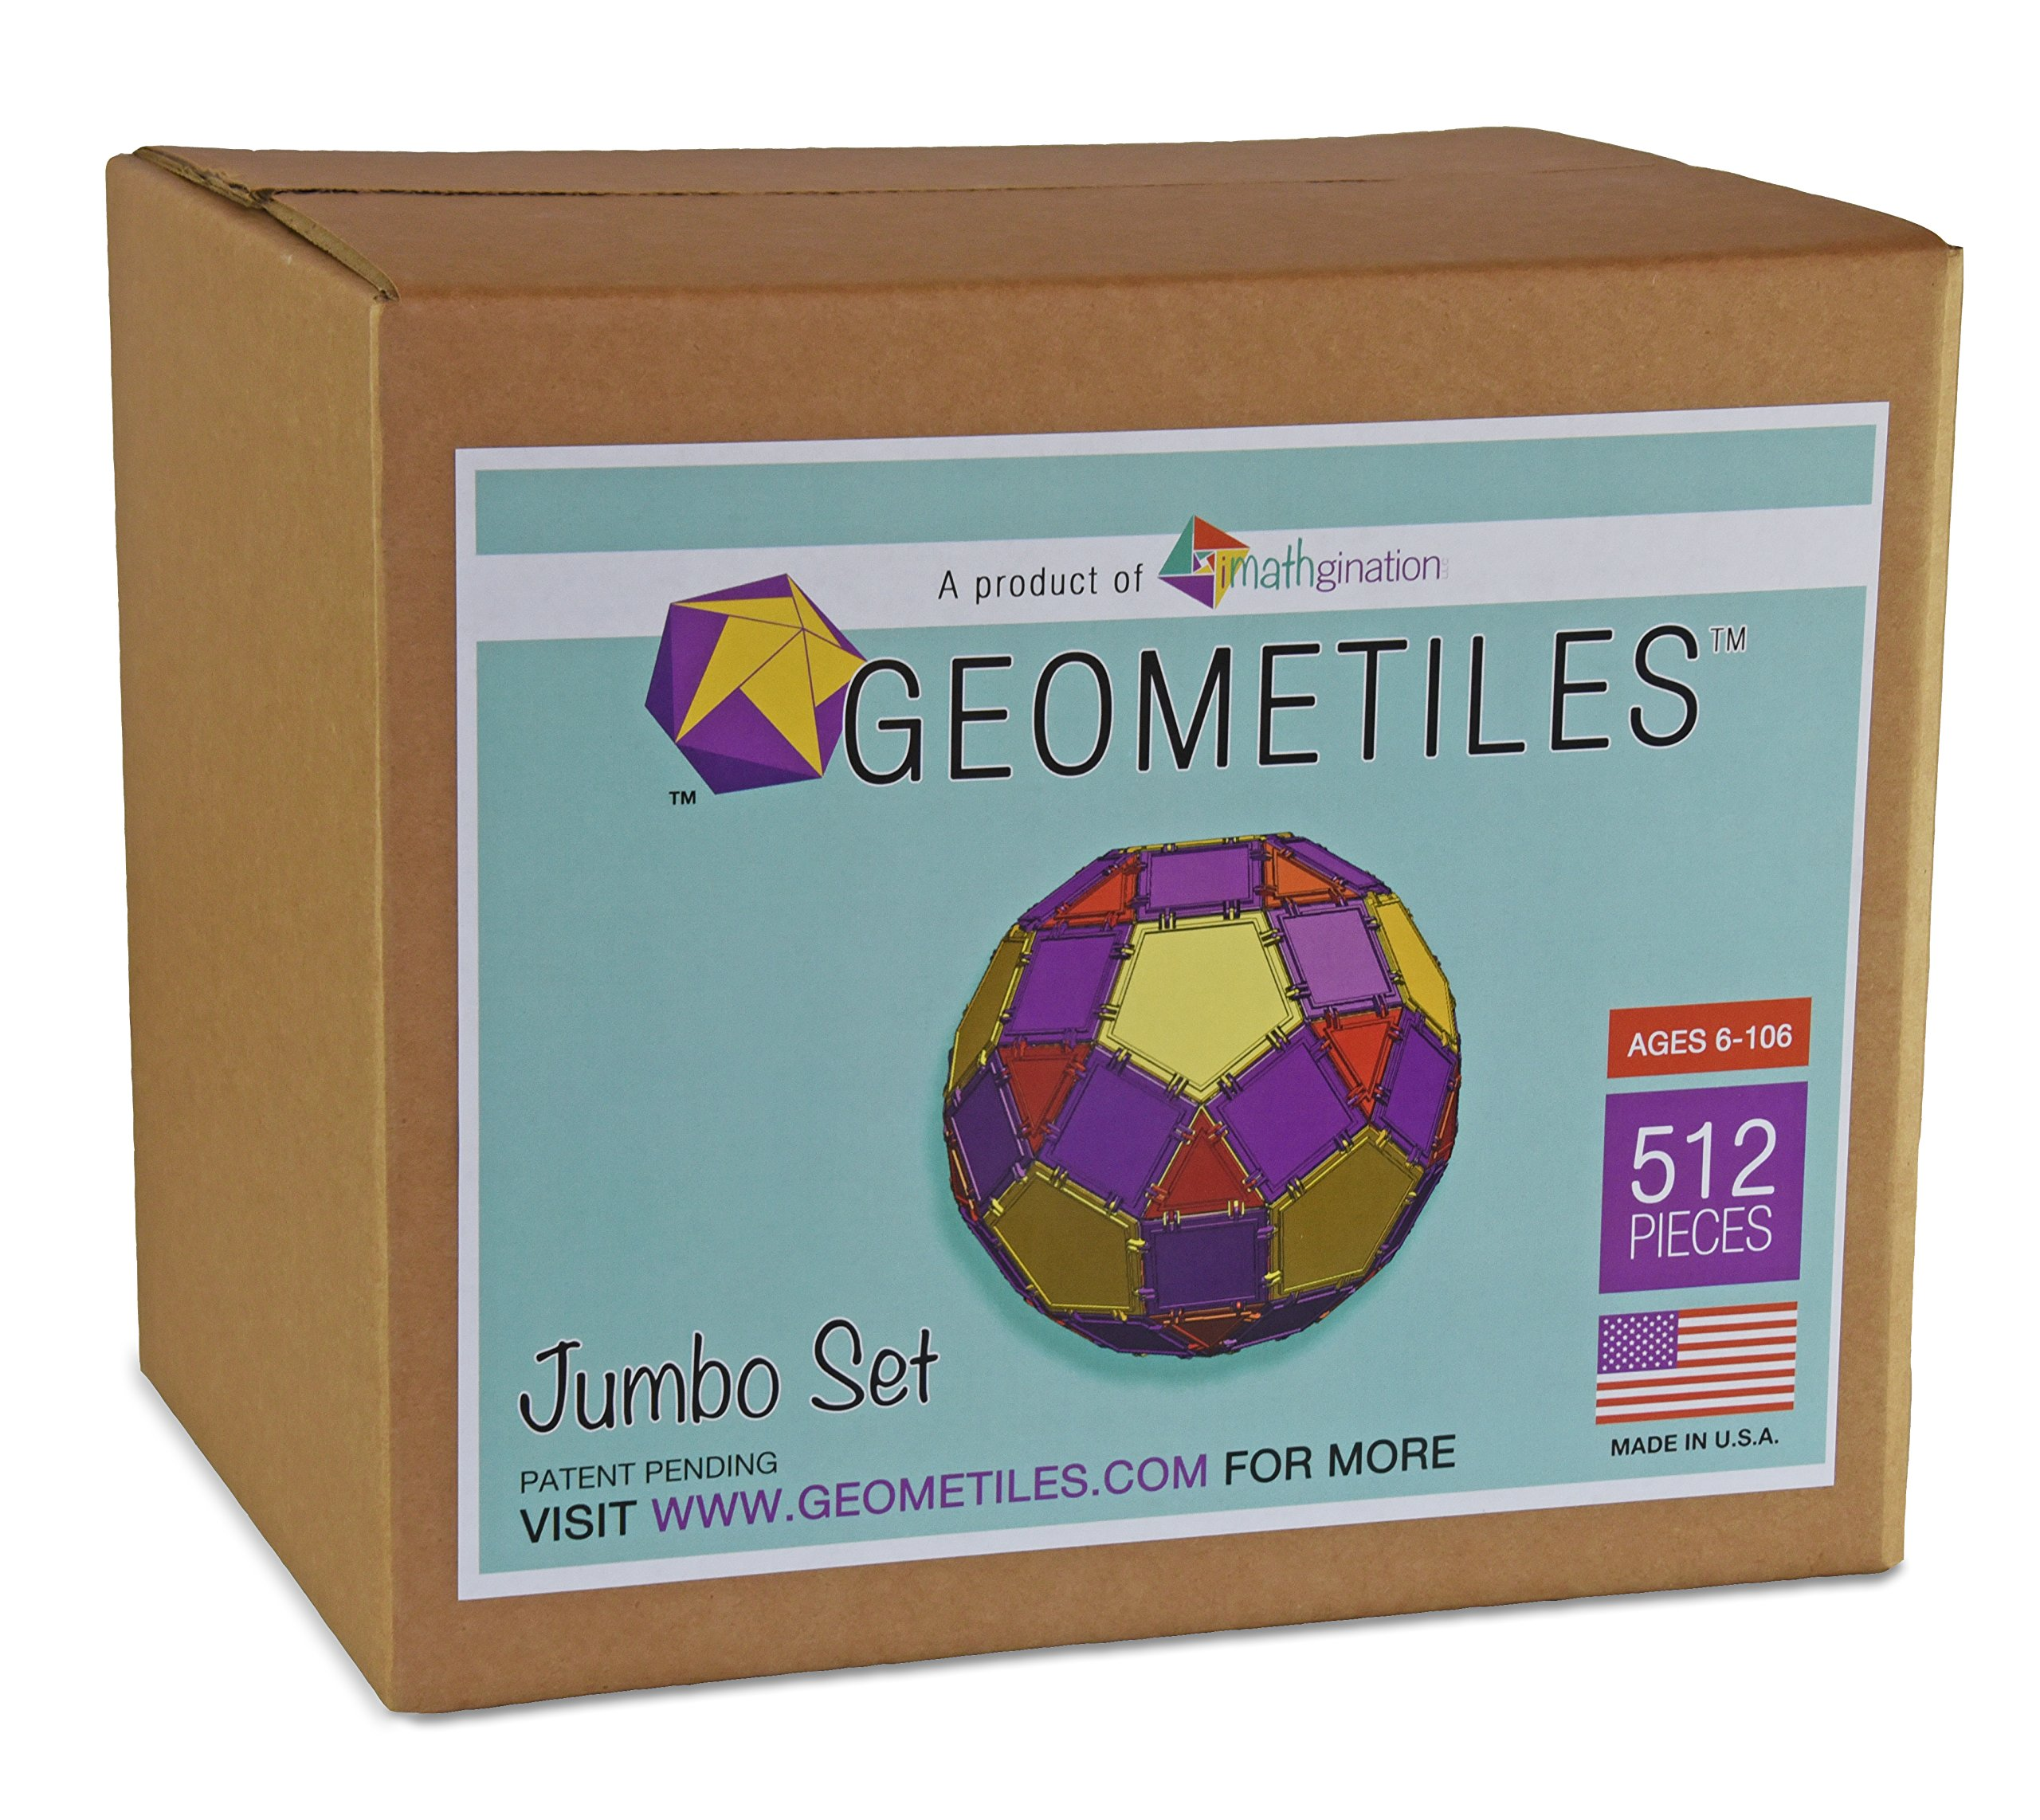 Geometiles 3D Building Set for Learning Math, Includes Free Online Activity Books, Jumbo Size, 512-pc, Made in USA